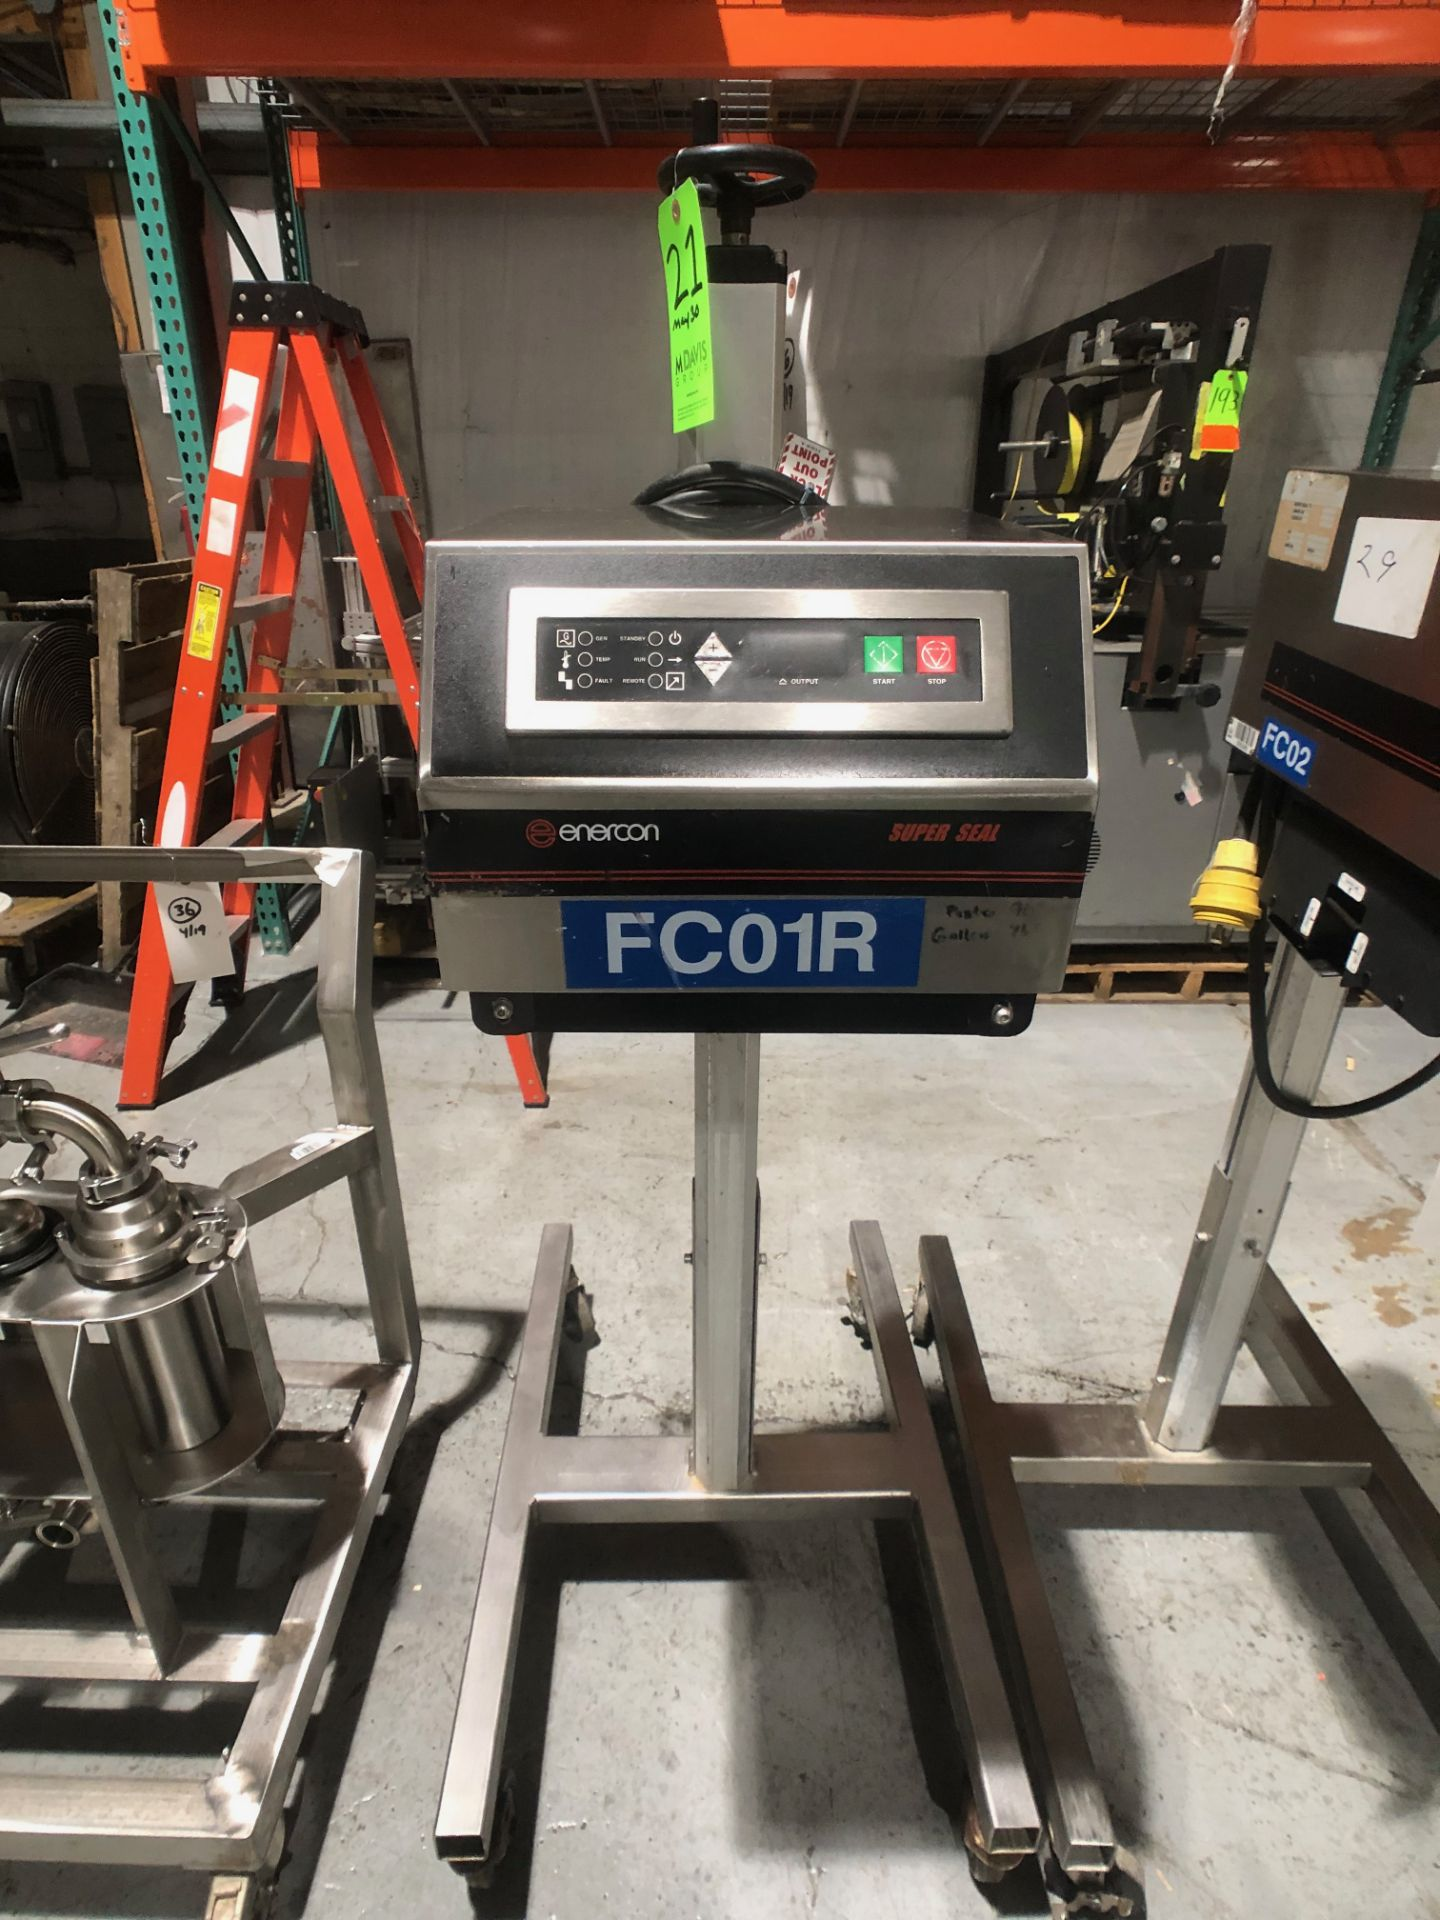 Lot 21 - Enercon Super Seal Portable Induction Sealer, Model LM4032-22, S/N 16450-01, Rating SS-75Mounted